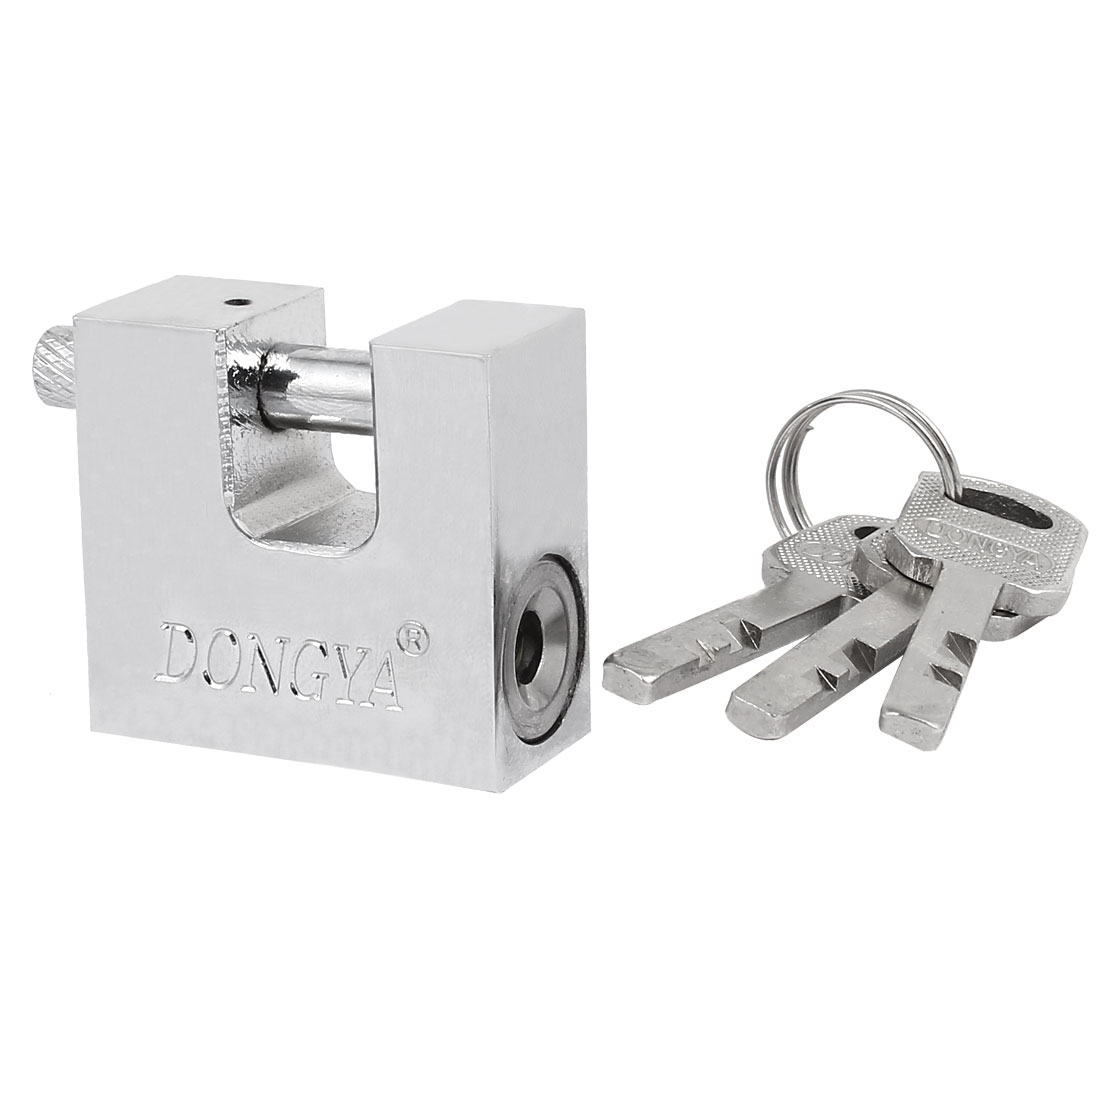 Home Office Rectangle Shaped Security Lock Padlock Silver Tone 50x40x20mm